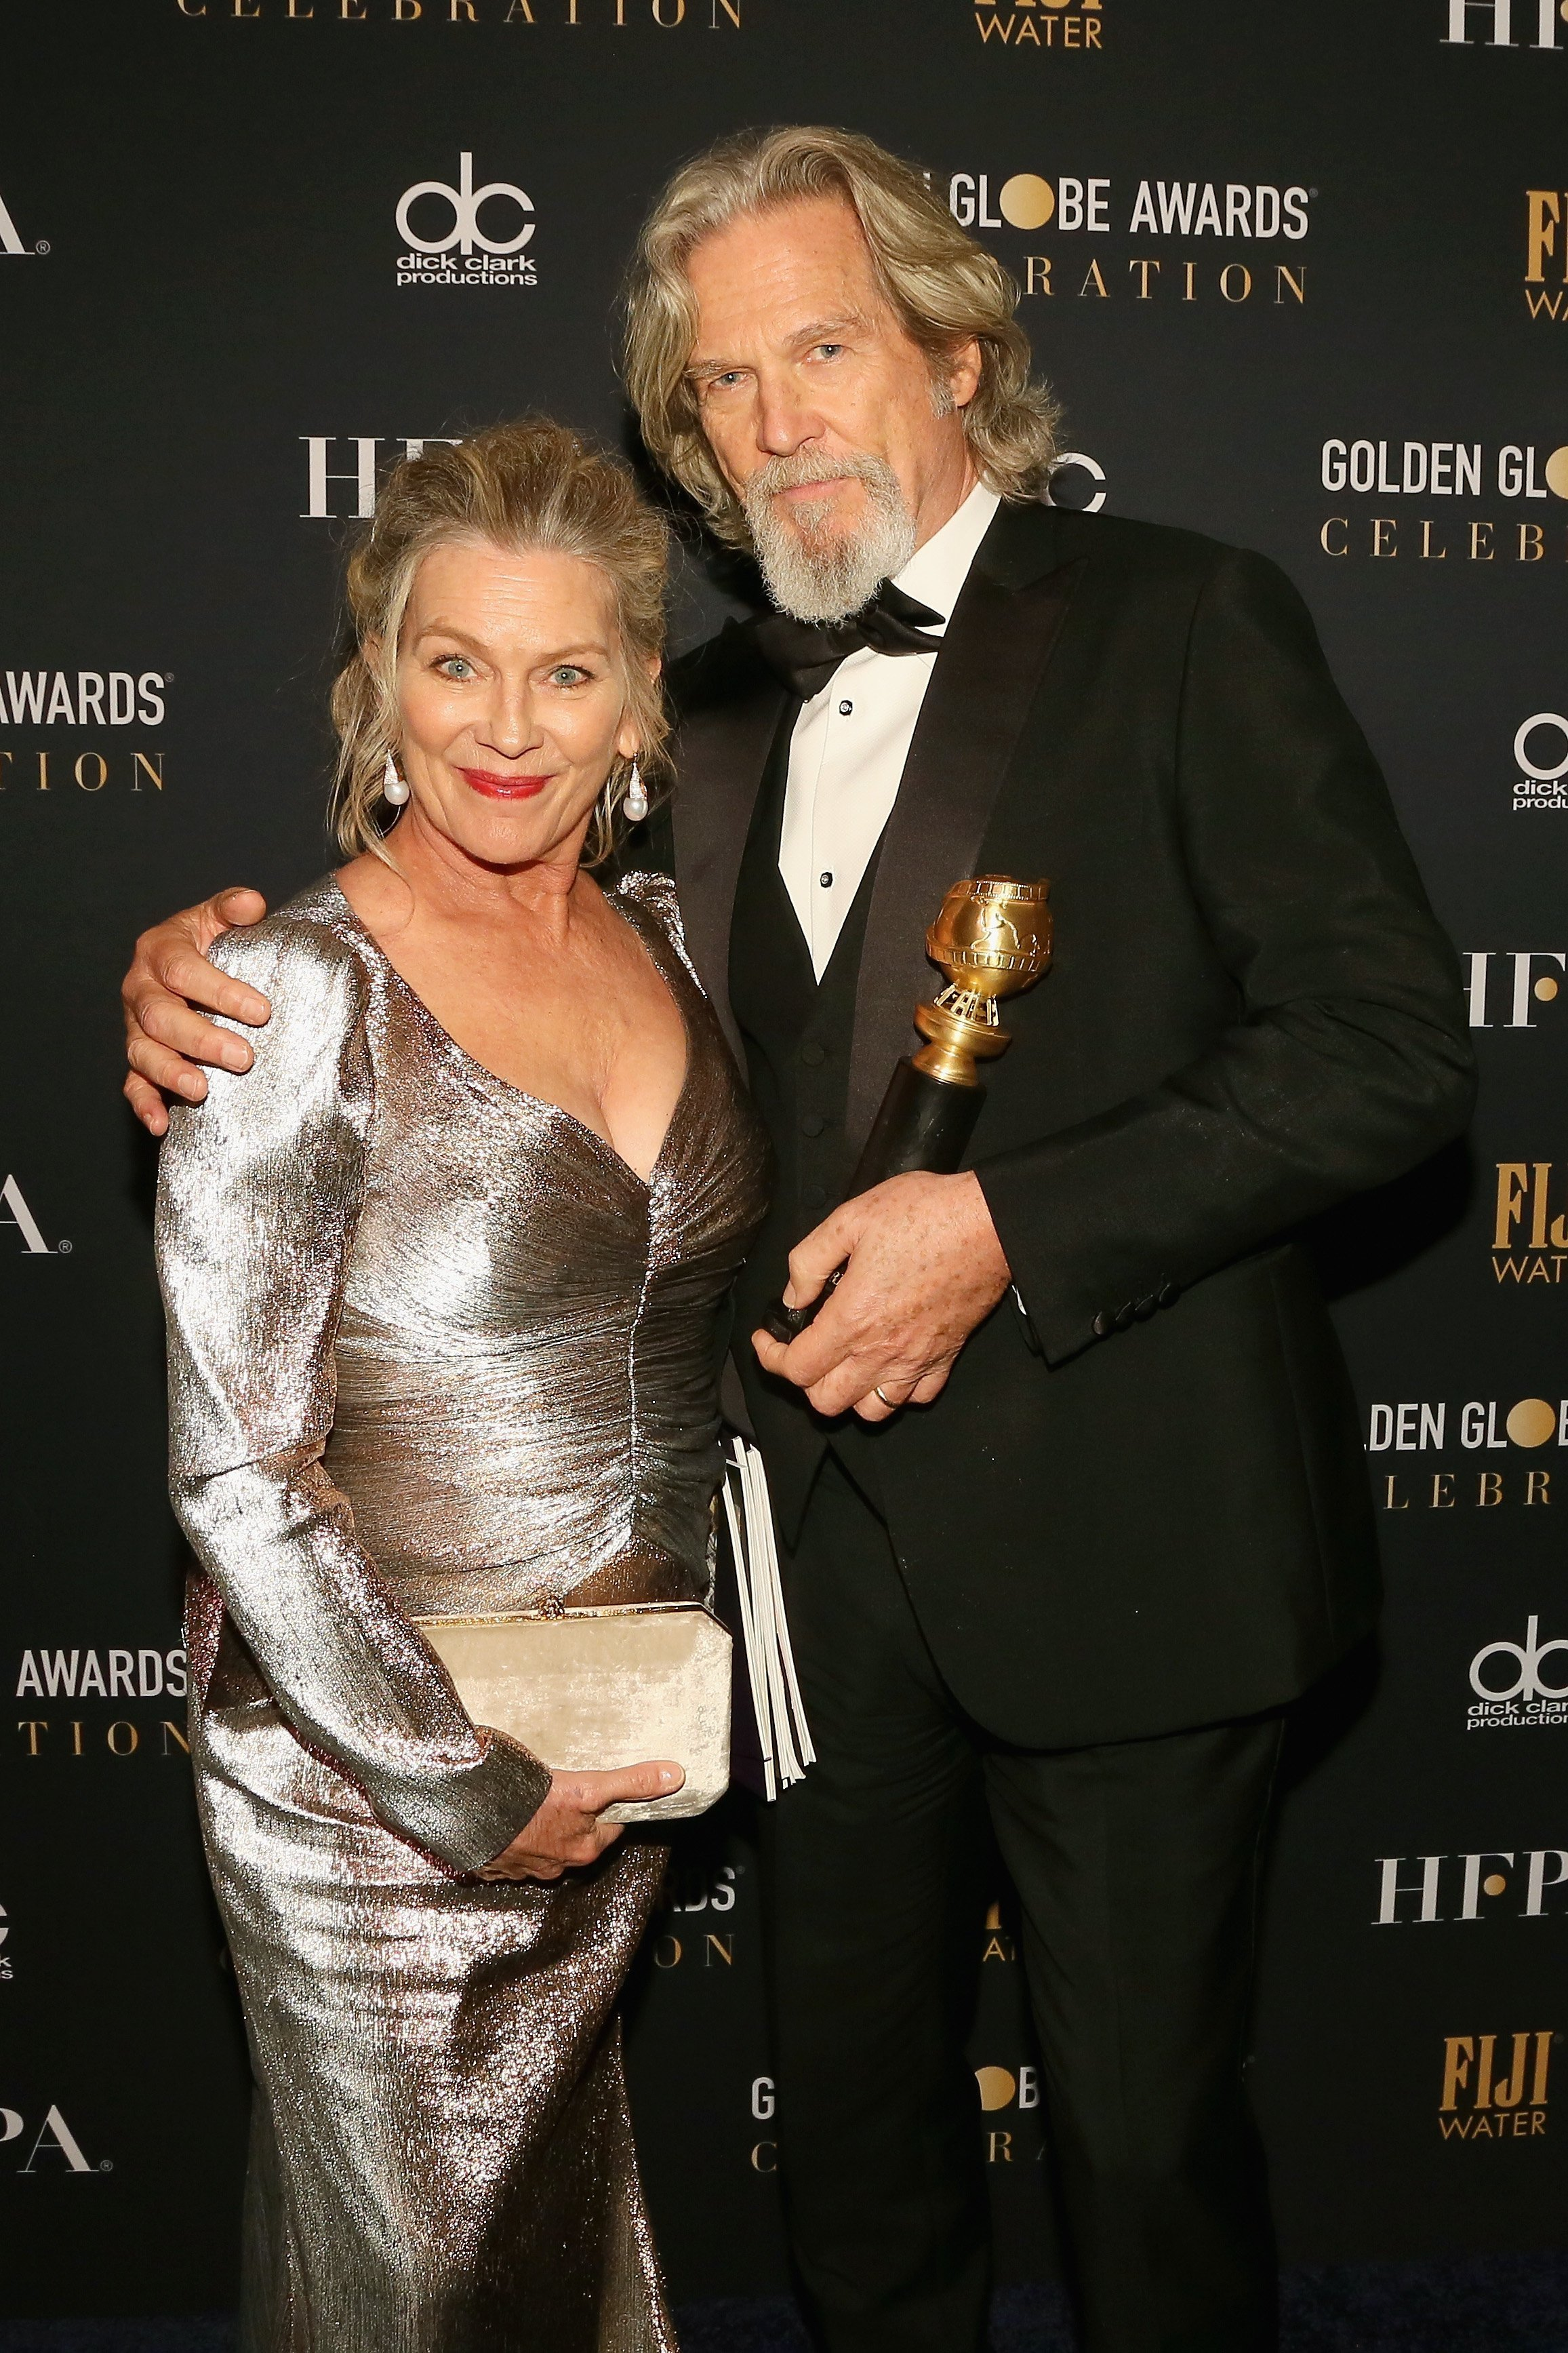 Jeff Bridges and Susan Geston attend FIJI Water at the 76th Annual Golden Globe Awards Celebration on January 6, 2019, in Los Angeles, California. | Source: Getty Images.